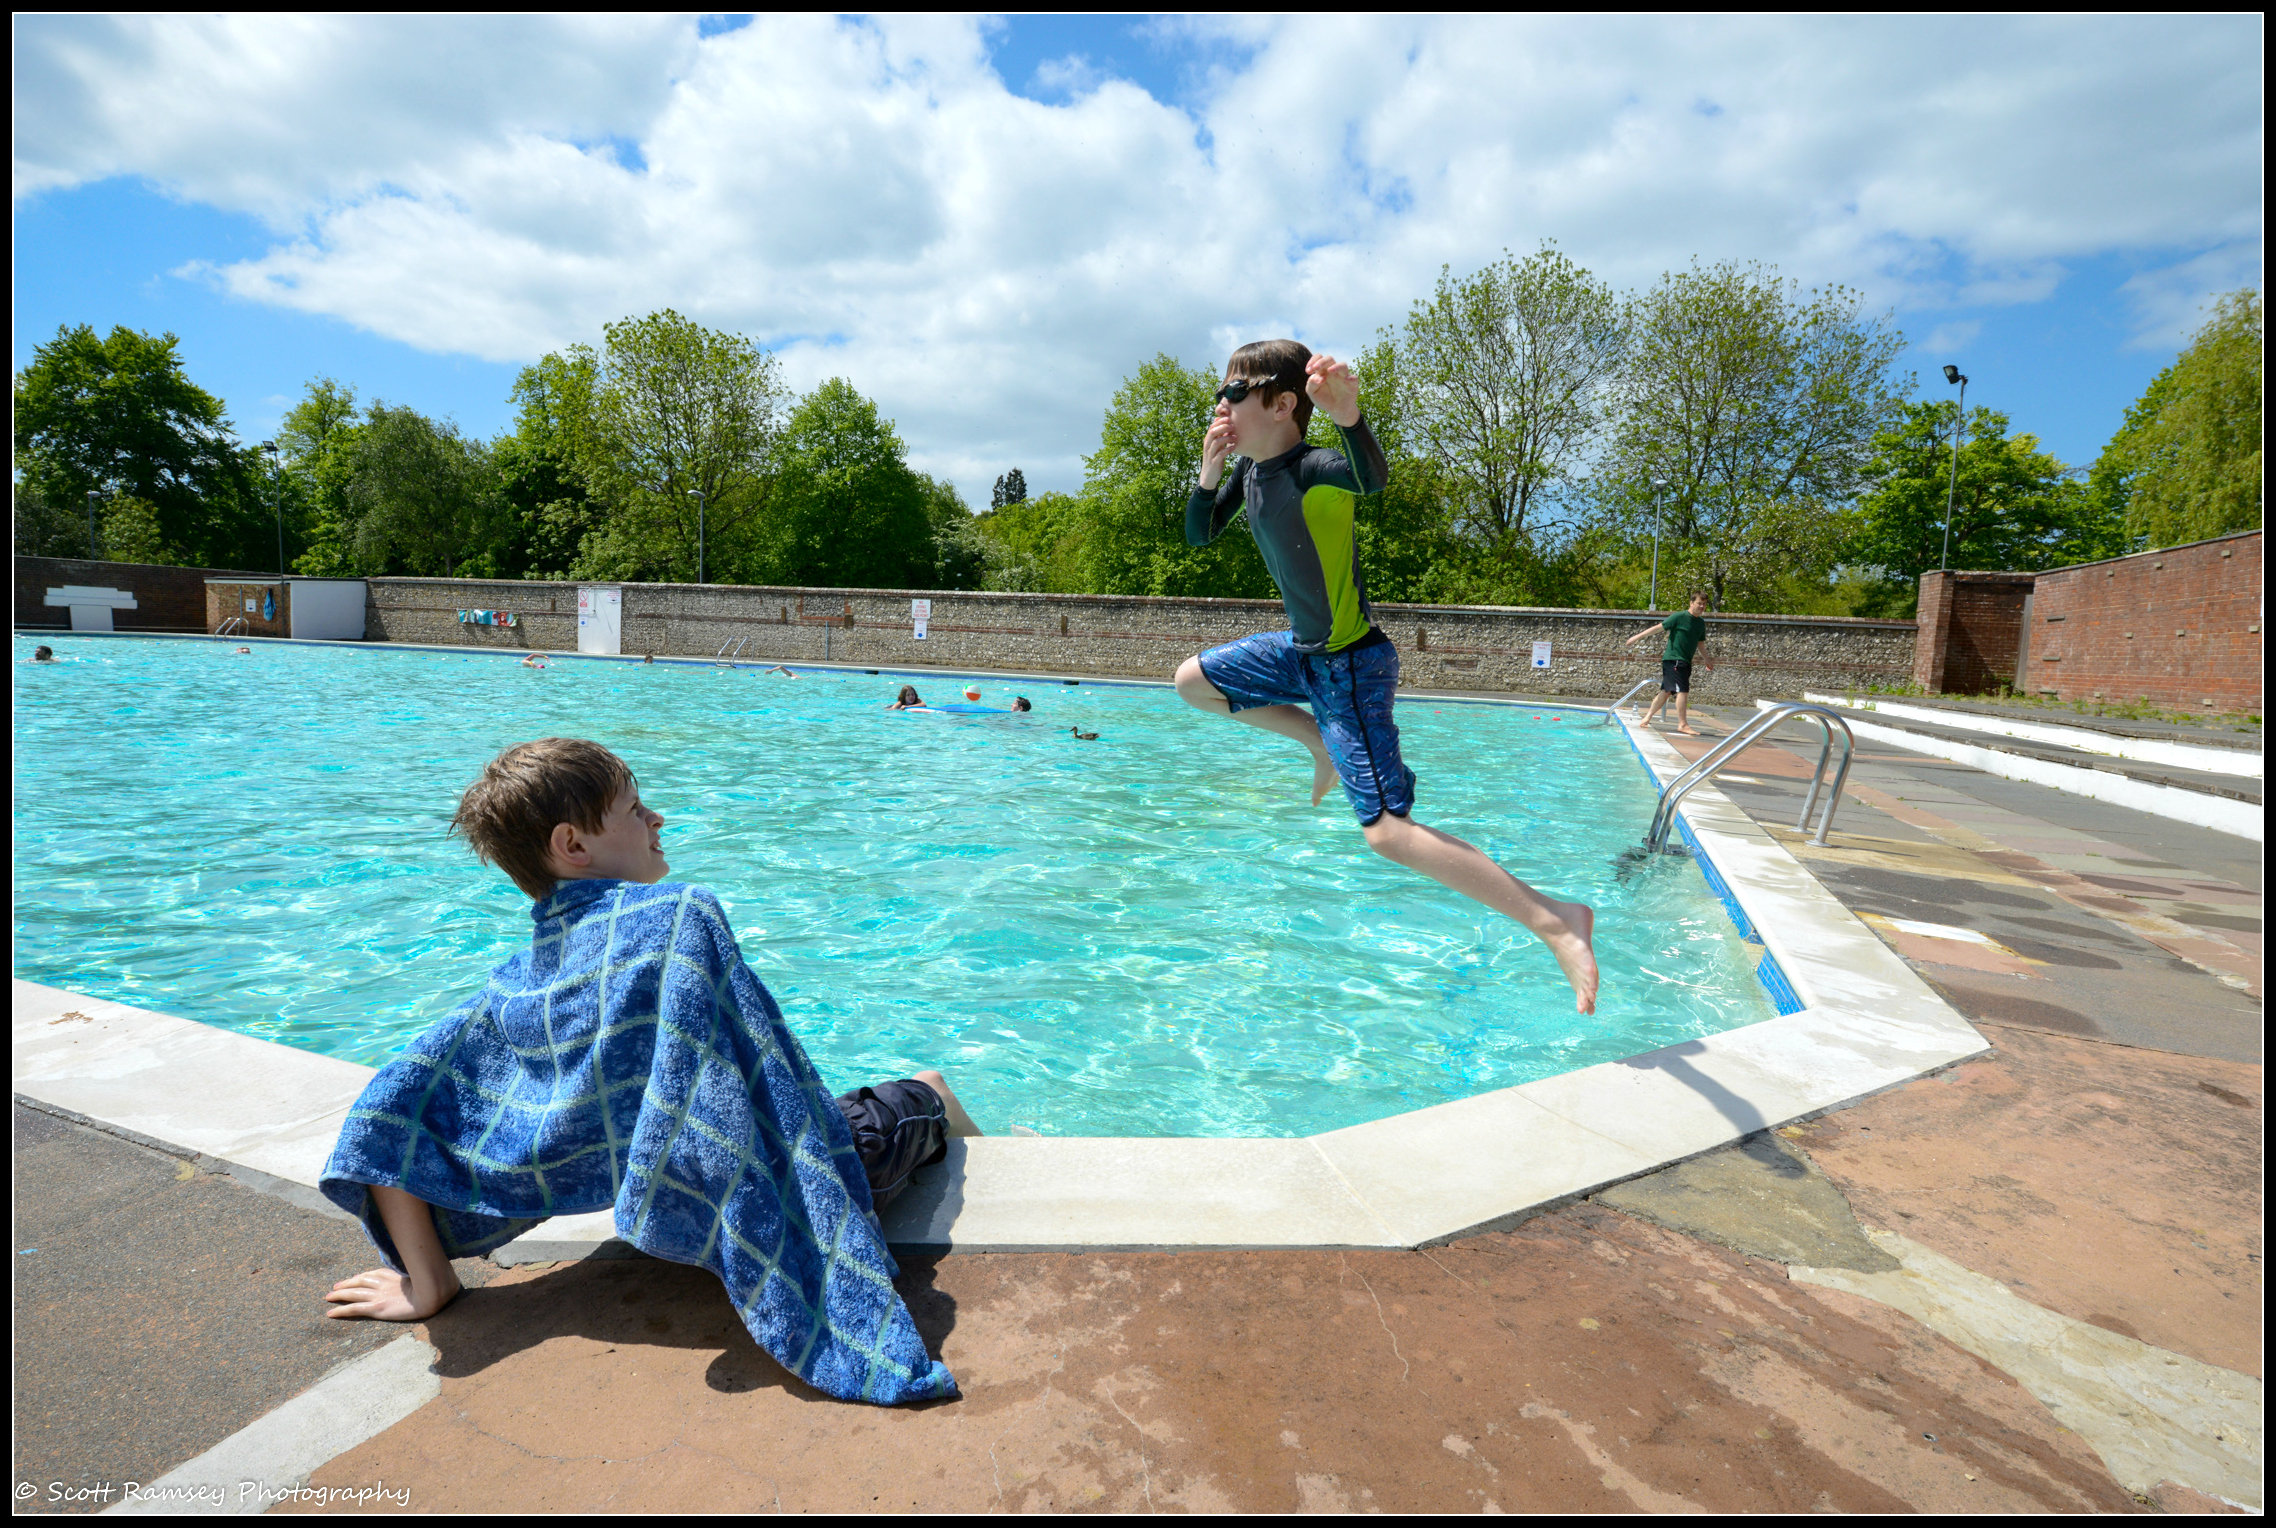 Watched by his friend a young boy holds his nose as he jumps into the swimming pool at Pells Pool in Lewes. © Scott Ramsey Photography